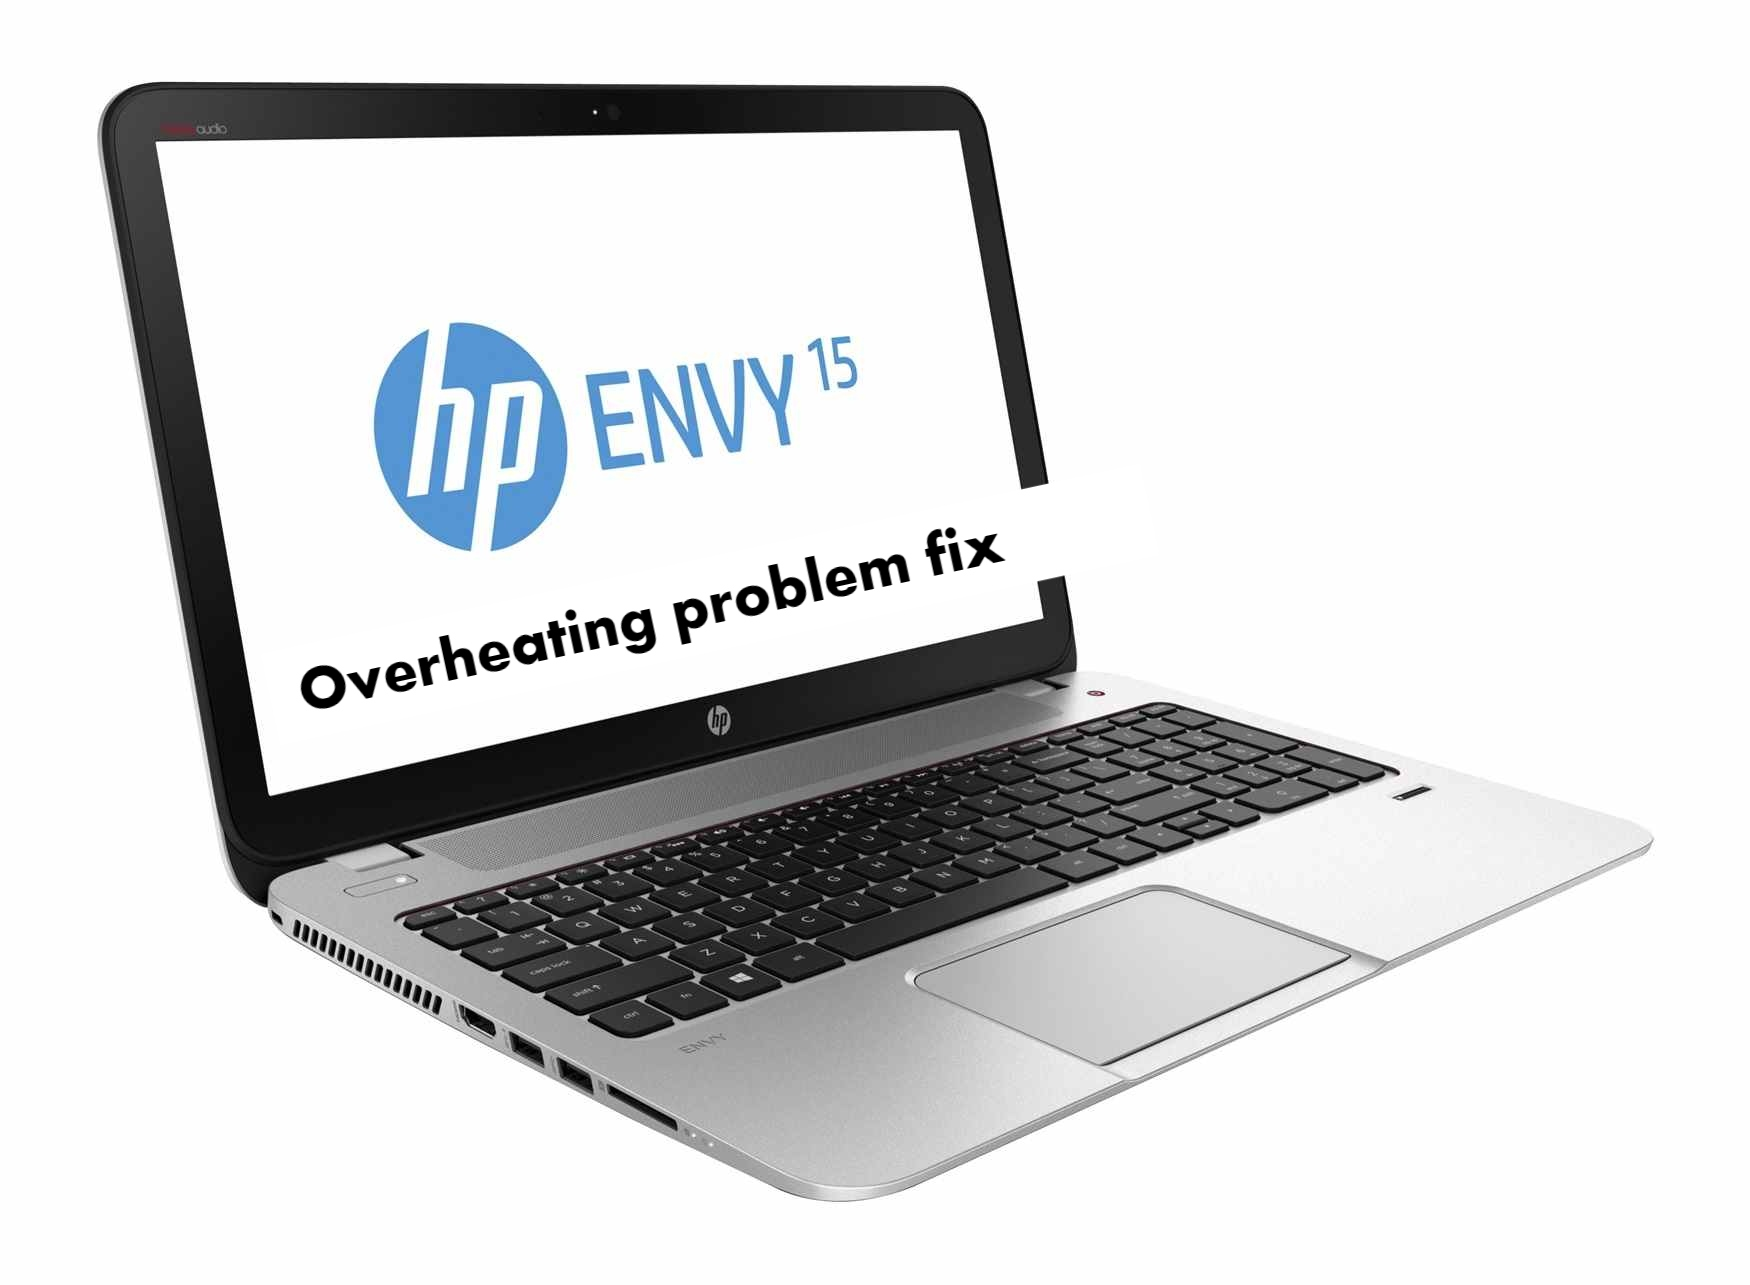 HP Envy 15 Overheating problem fix